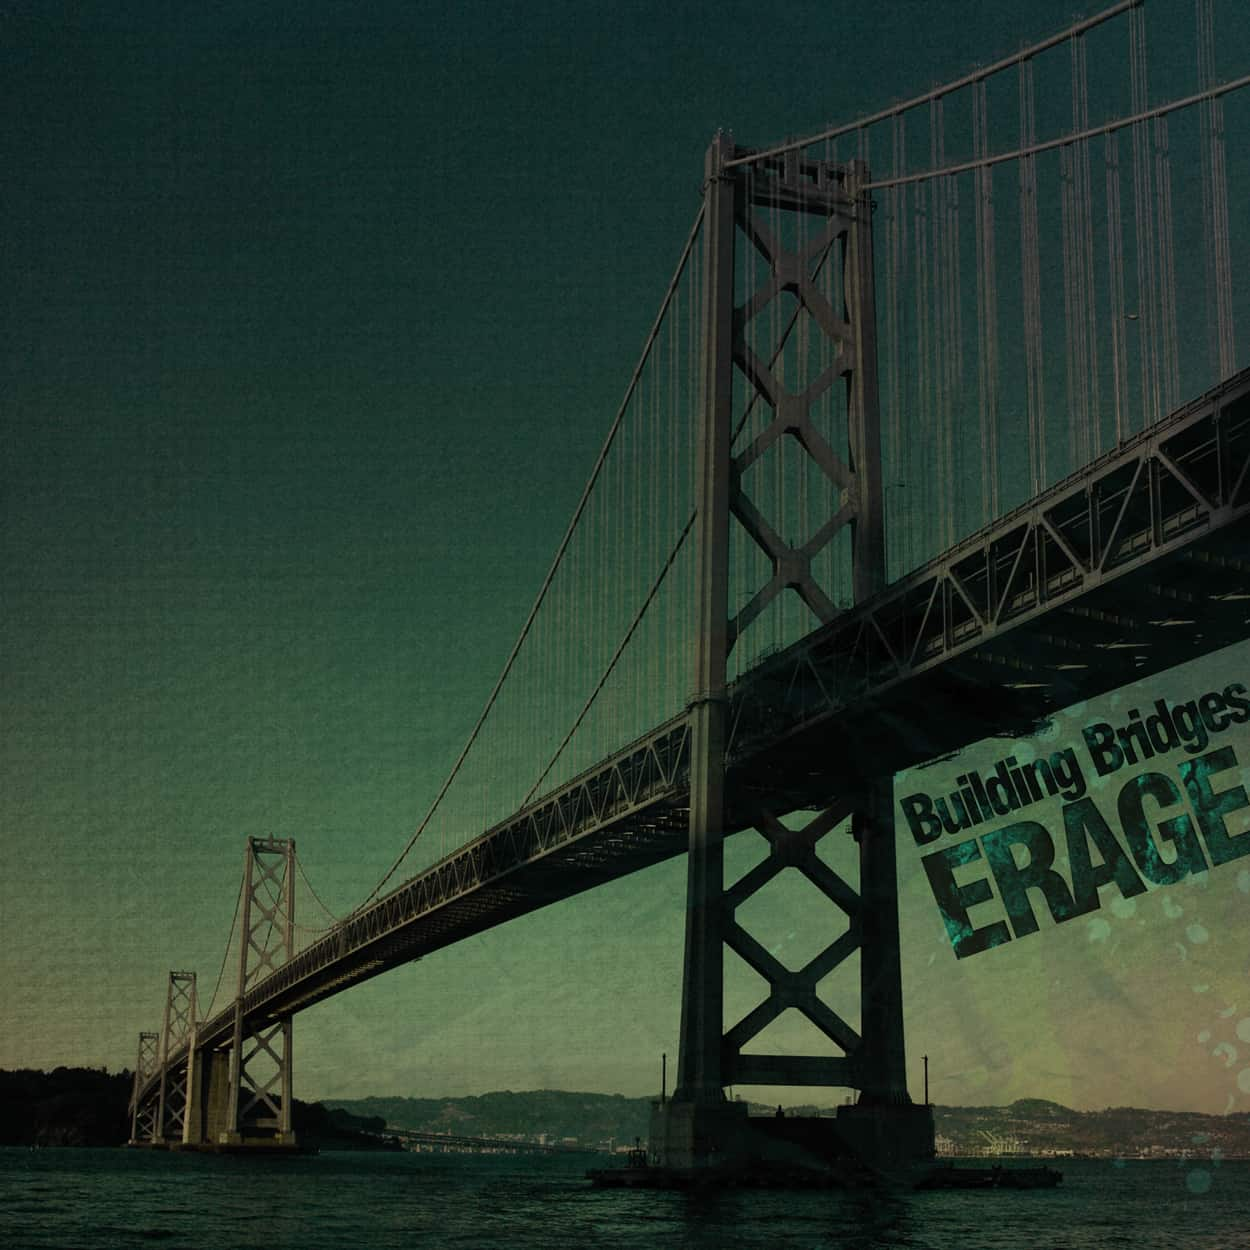 erage - building bridges - album art design